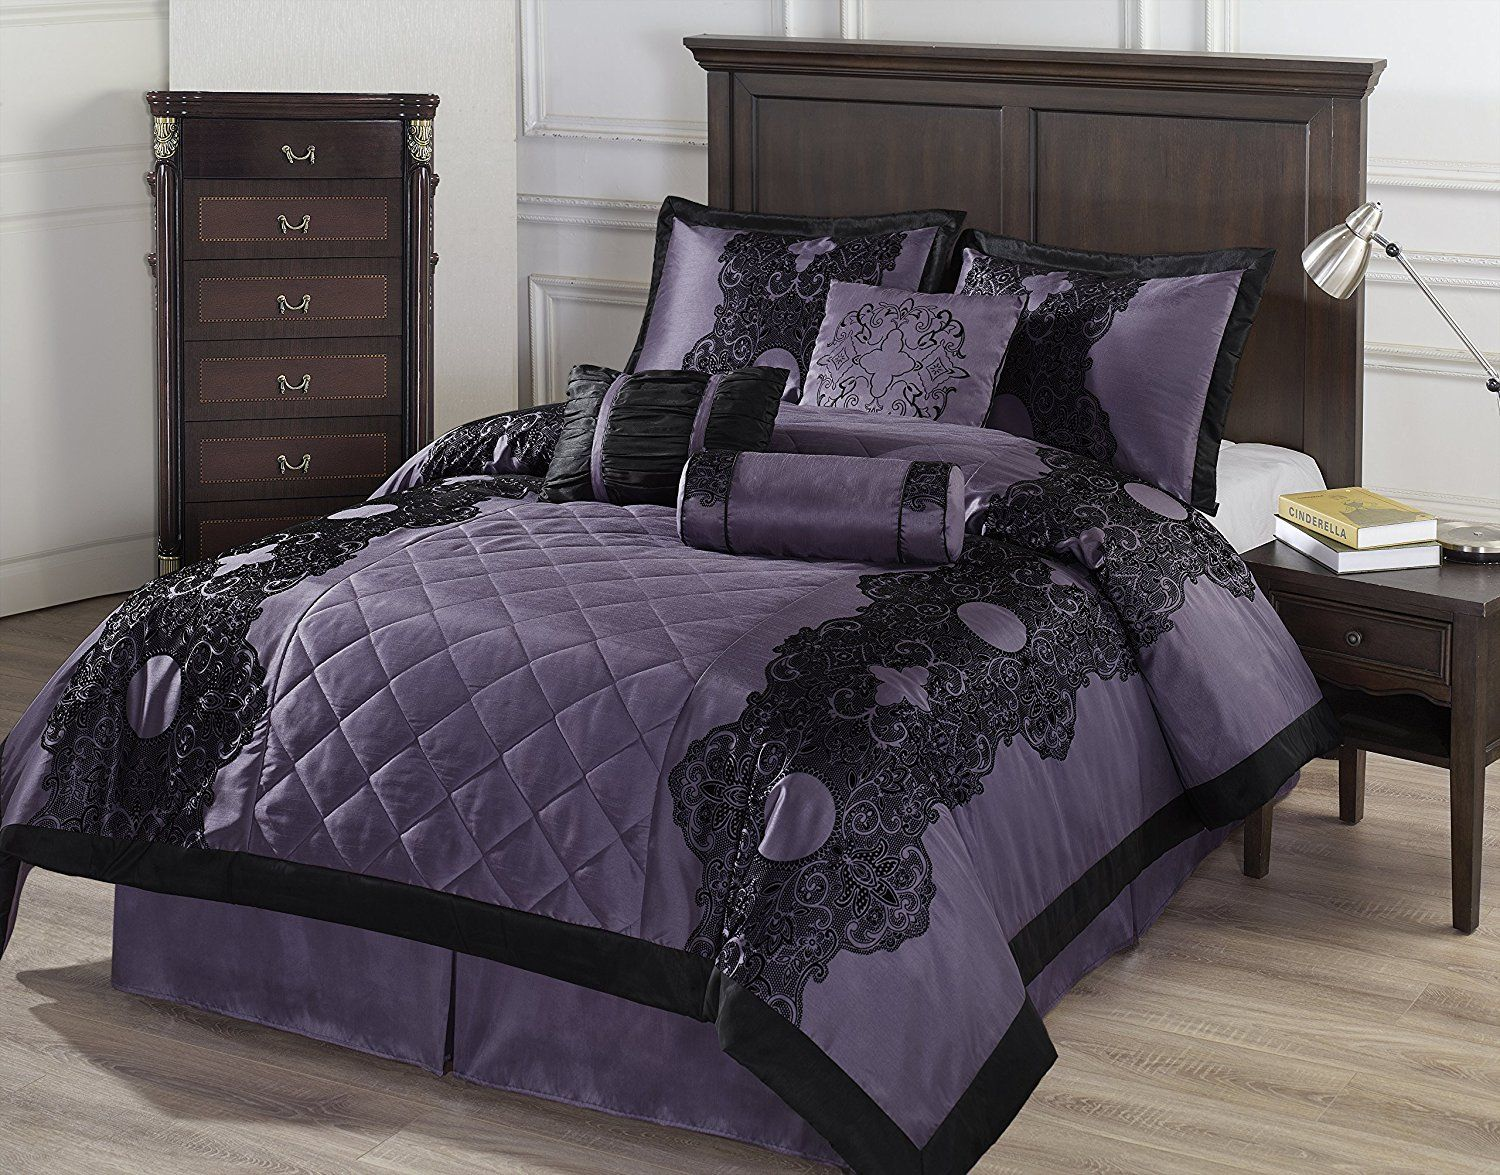 Black And Purple Dorm Bedding Comforter Sets Bed Linens Luxury